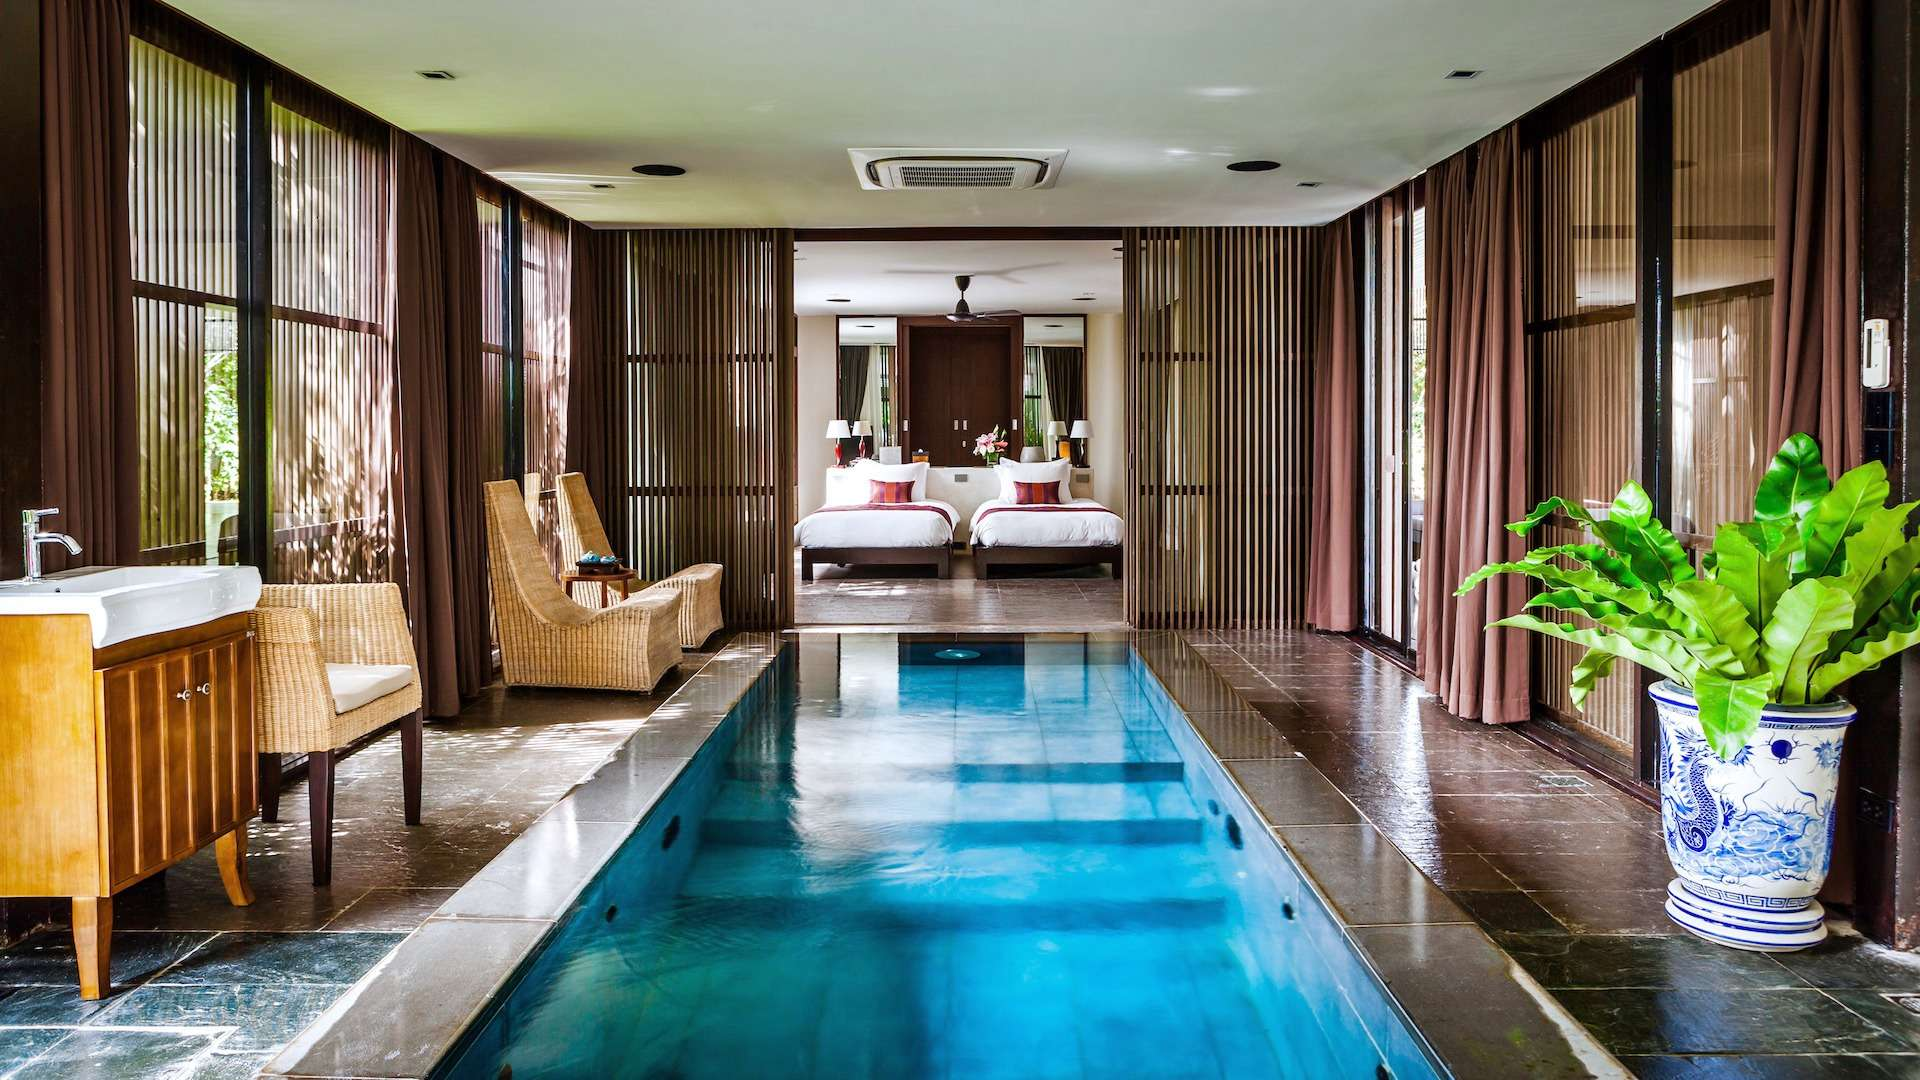 indoor swimming pool leading to bedroom at Villa Akatsuki Koh Samui